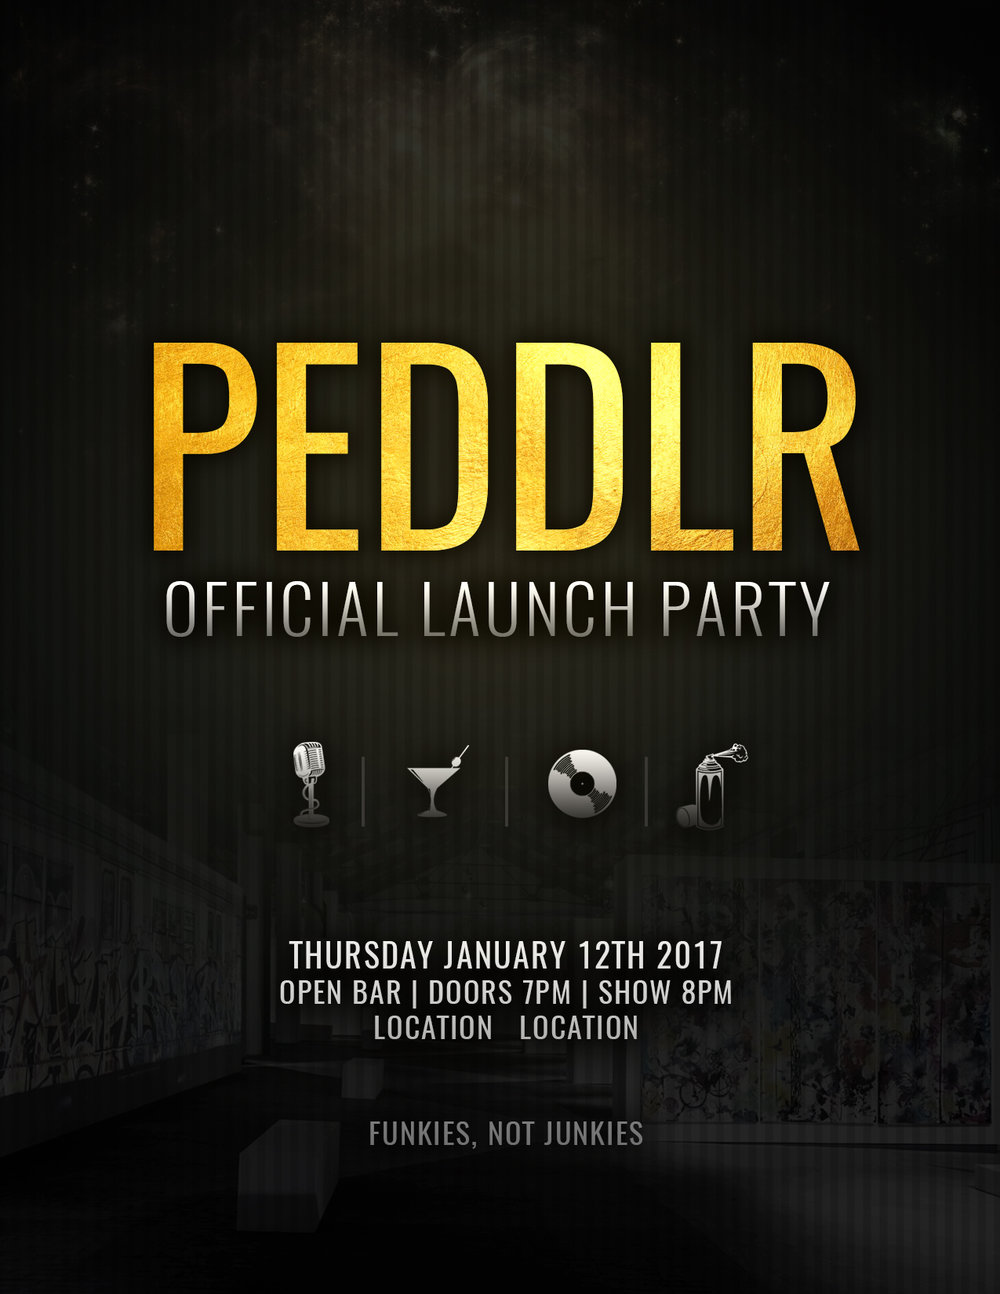 Peddlr Launch Party Flyer.jpg